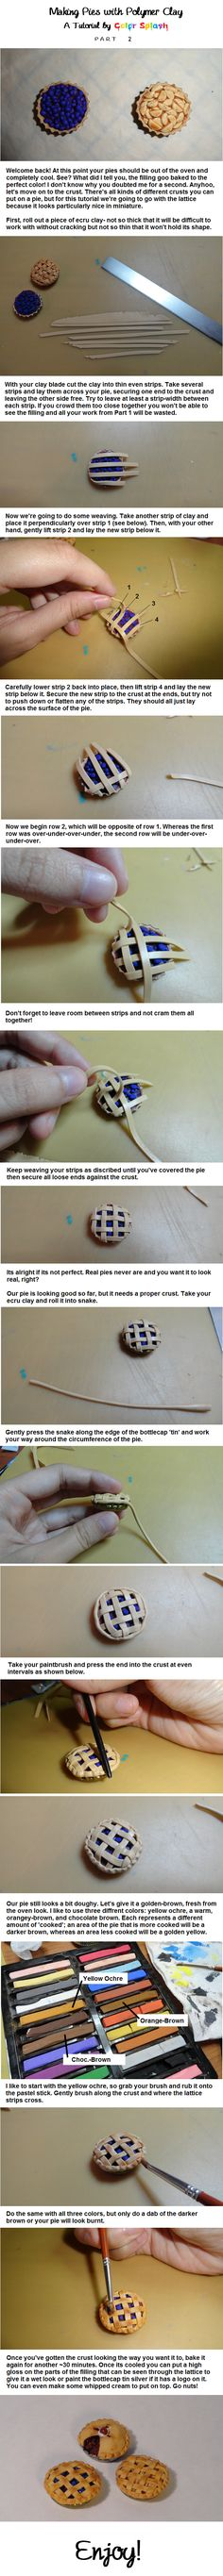 Polymer Clay Pie Tutorial PART 2 by ~Colour-Splashes on deviantART